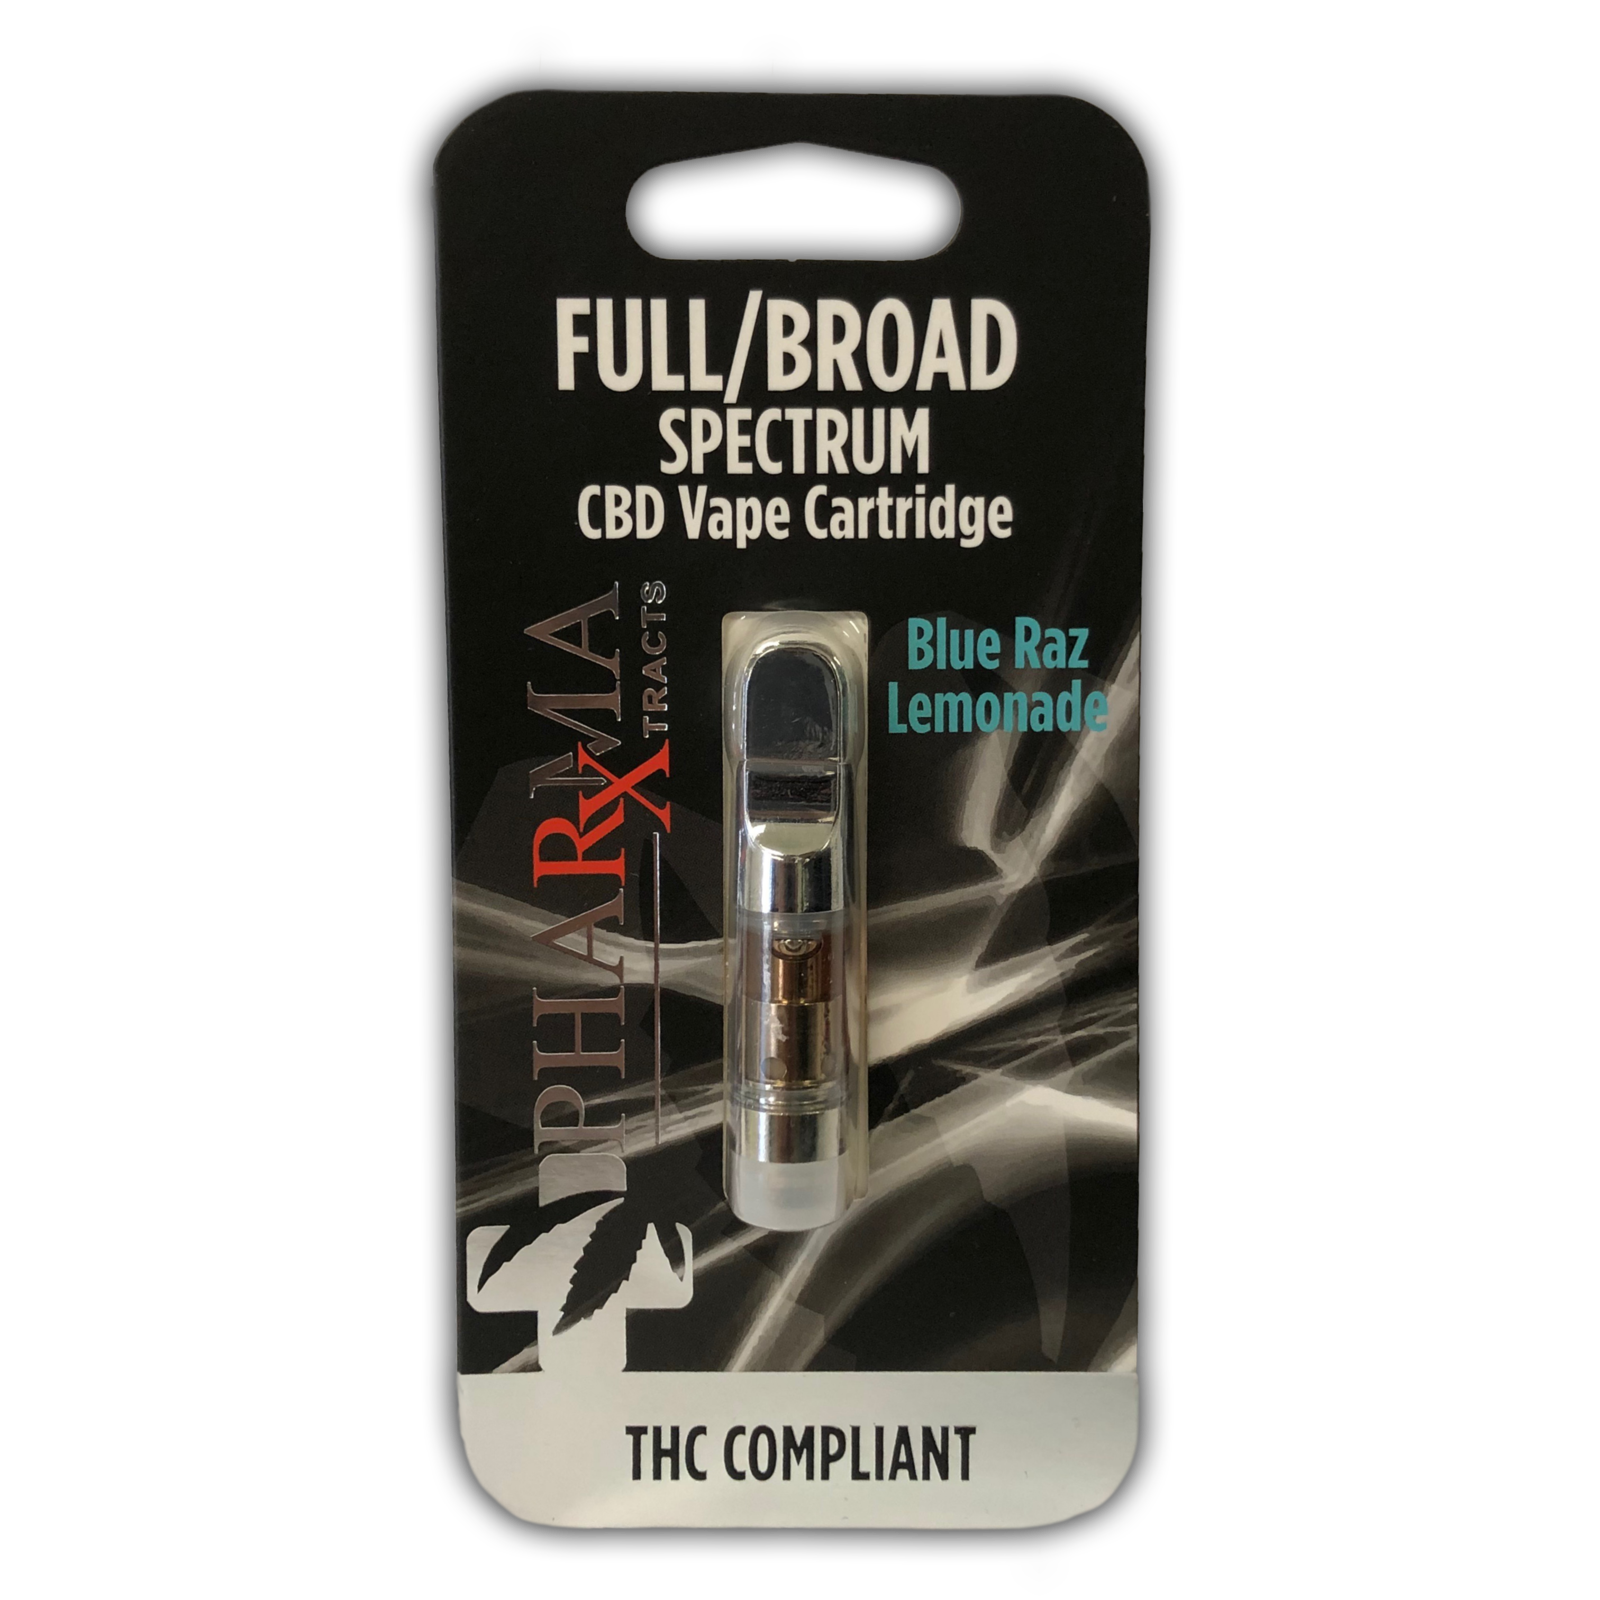 Full/Broad Spectrum Vape Cartridge